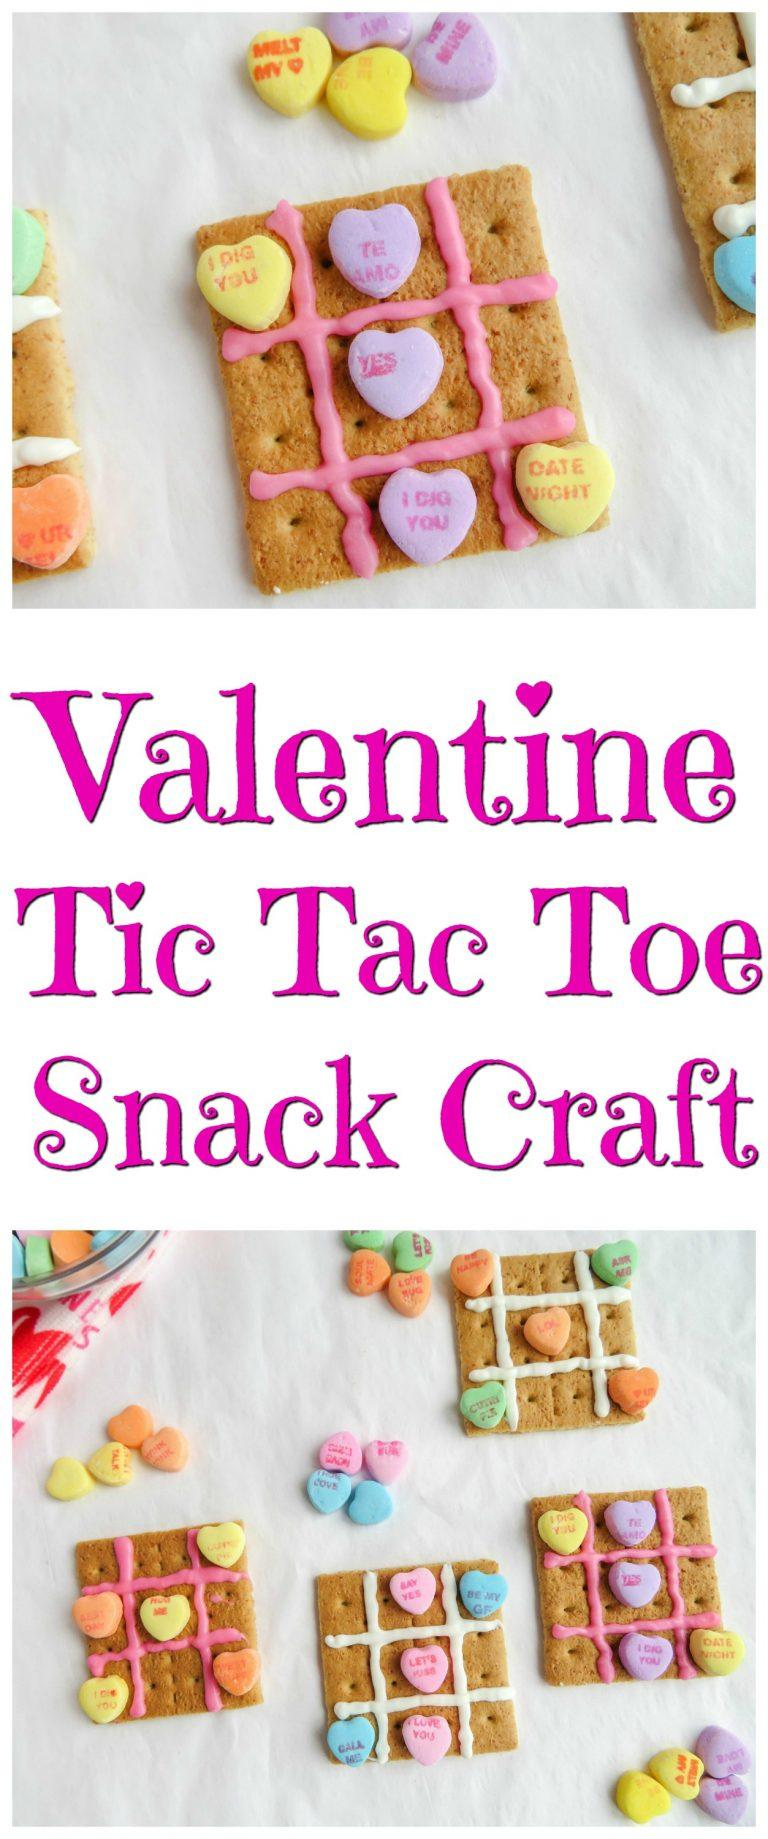 Valentine Tic Tac Toe Snack Craft